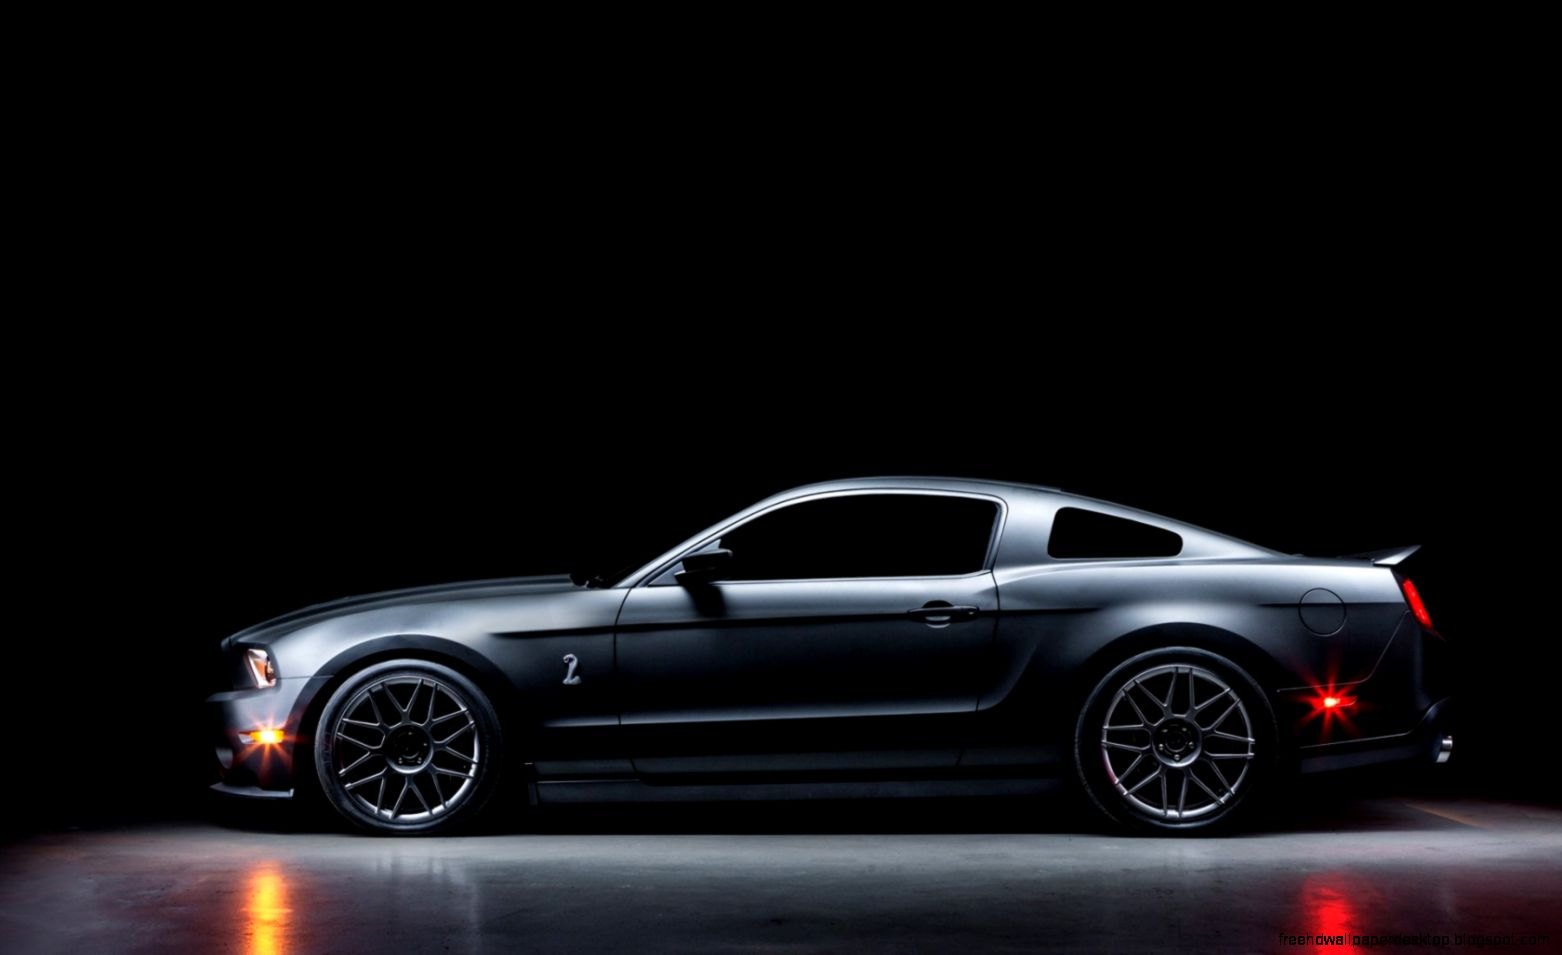 Ford Mustang Shelby GT500 Profile Car HD Wallpaper   FreeWallsUp